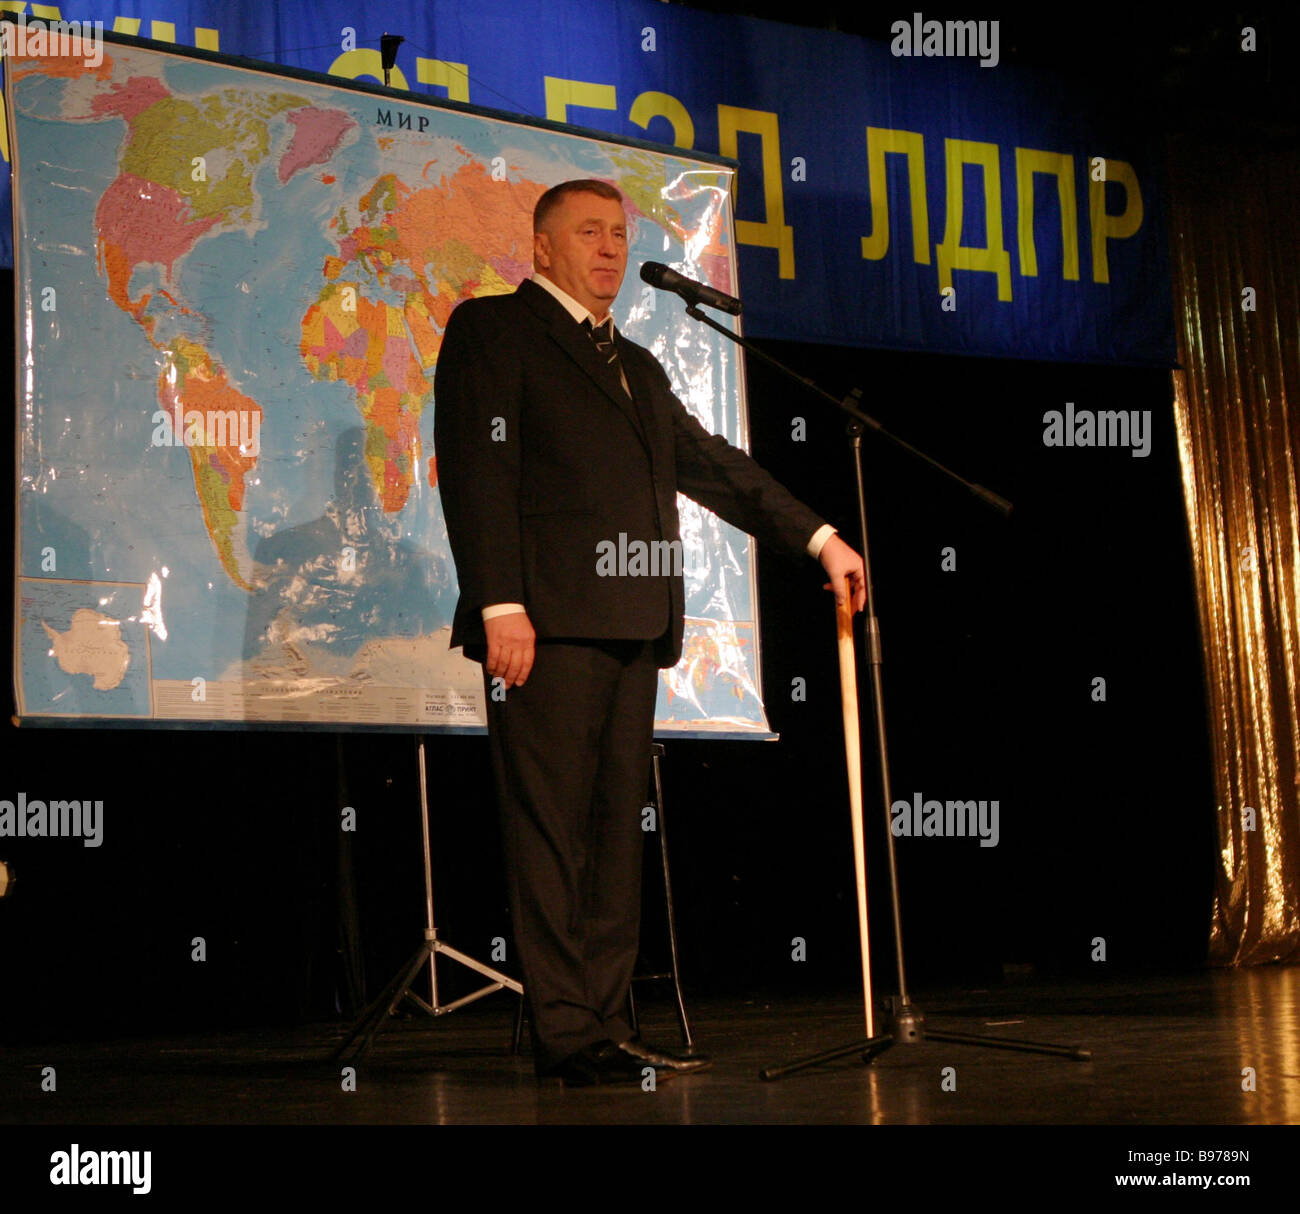 Vladimir Zhirinovsky the head of the Liberal Democratic Party of Russia attending the 17th LDPR congress - Stock Image